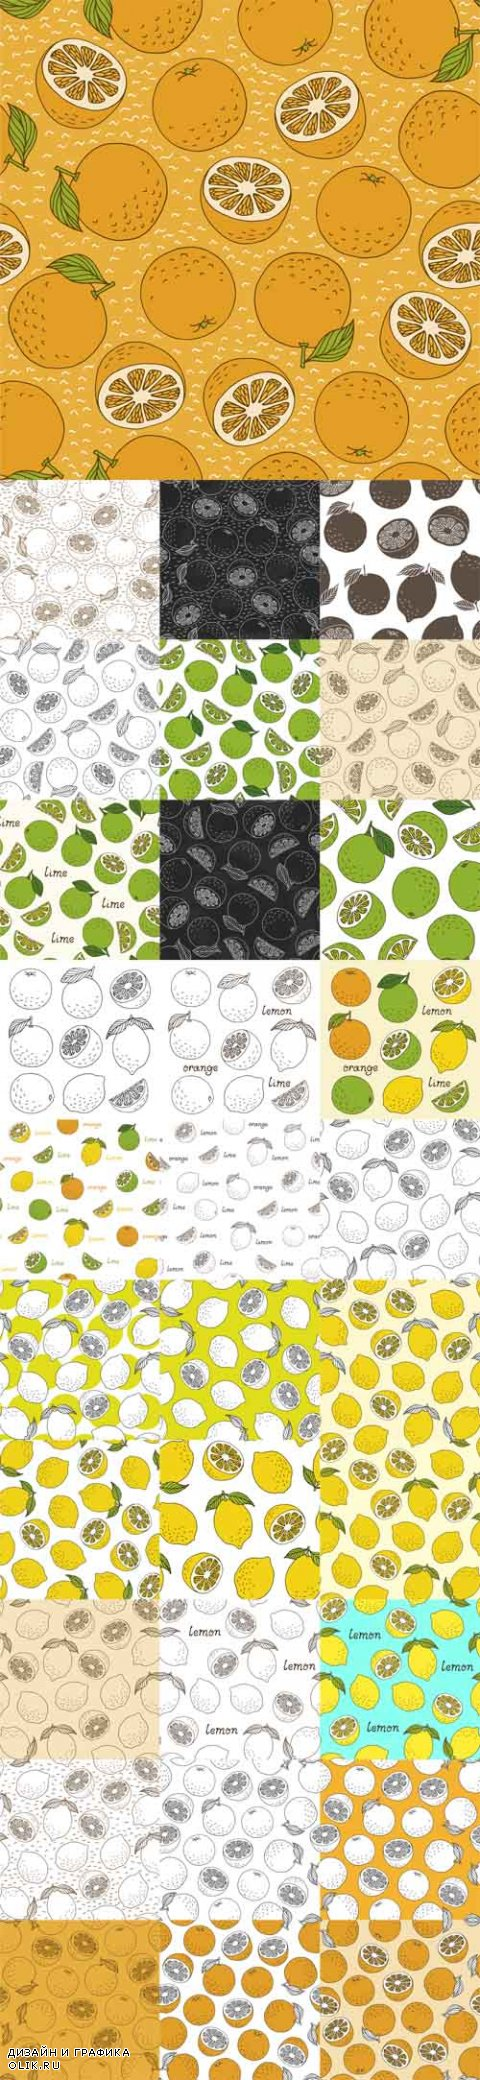 Vector Lemon, Orange and Lime Seamless Patterns